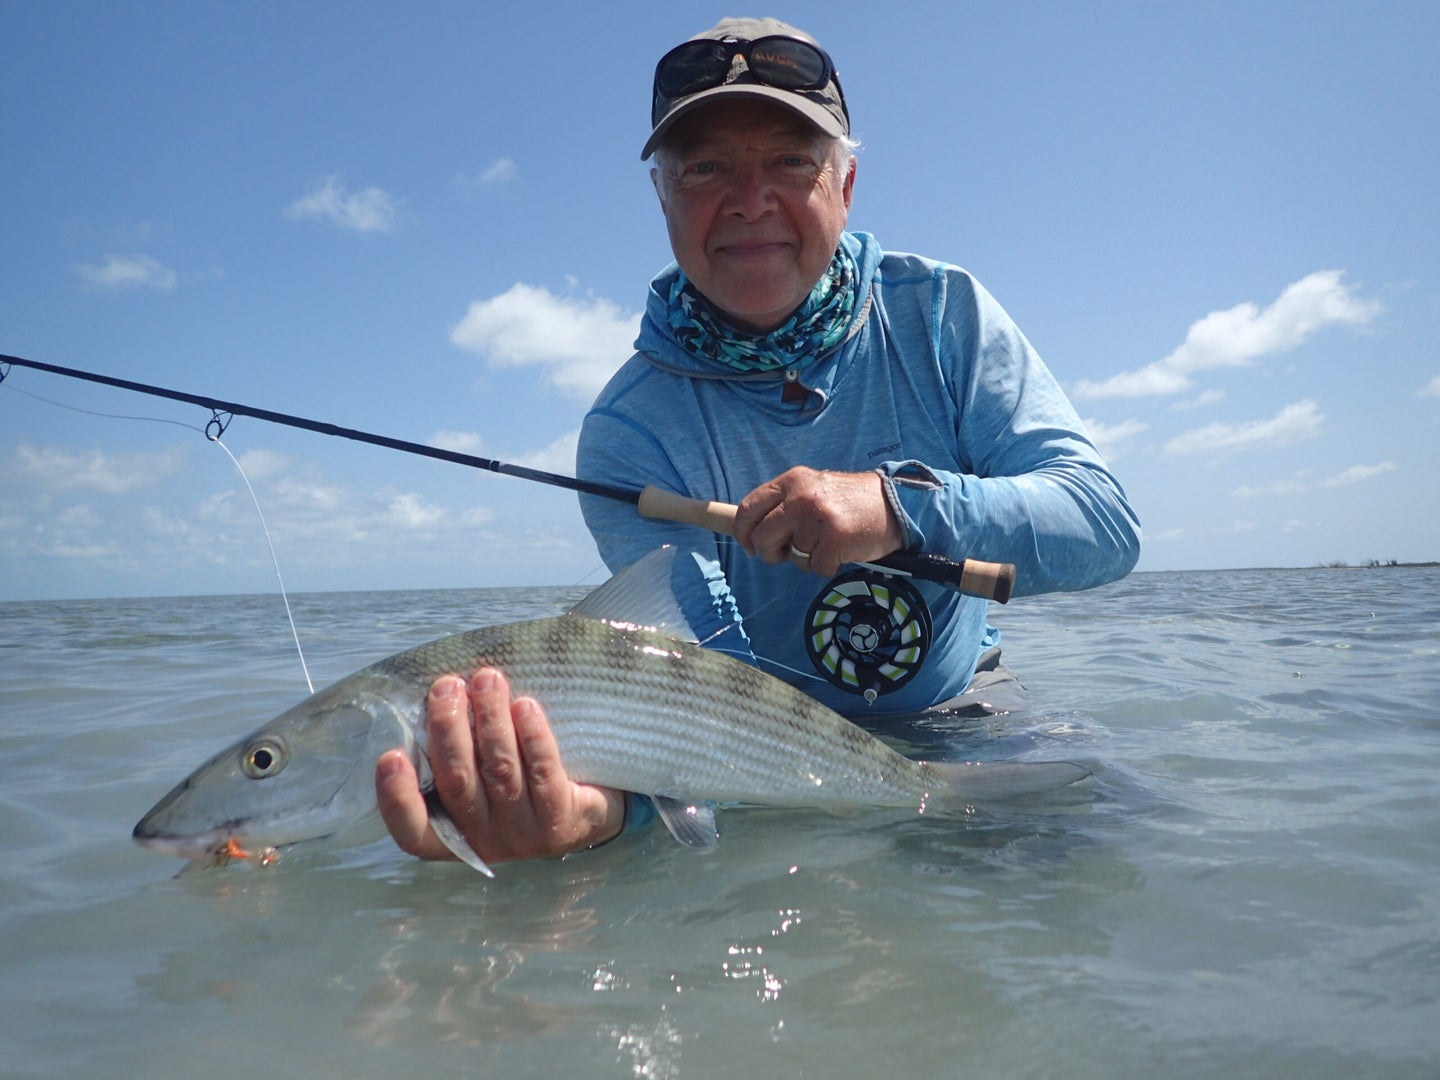 Saltwater fly fisherman catches a bonefish with the Orvis Helios blackout rod